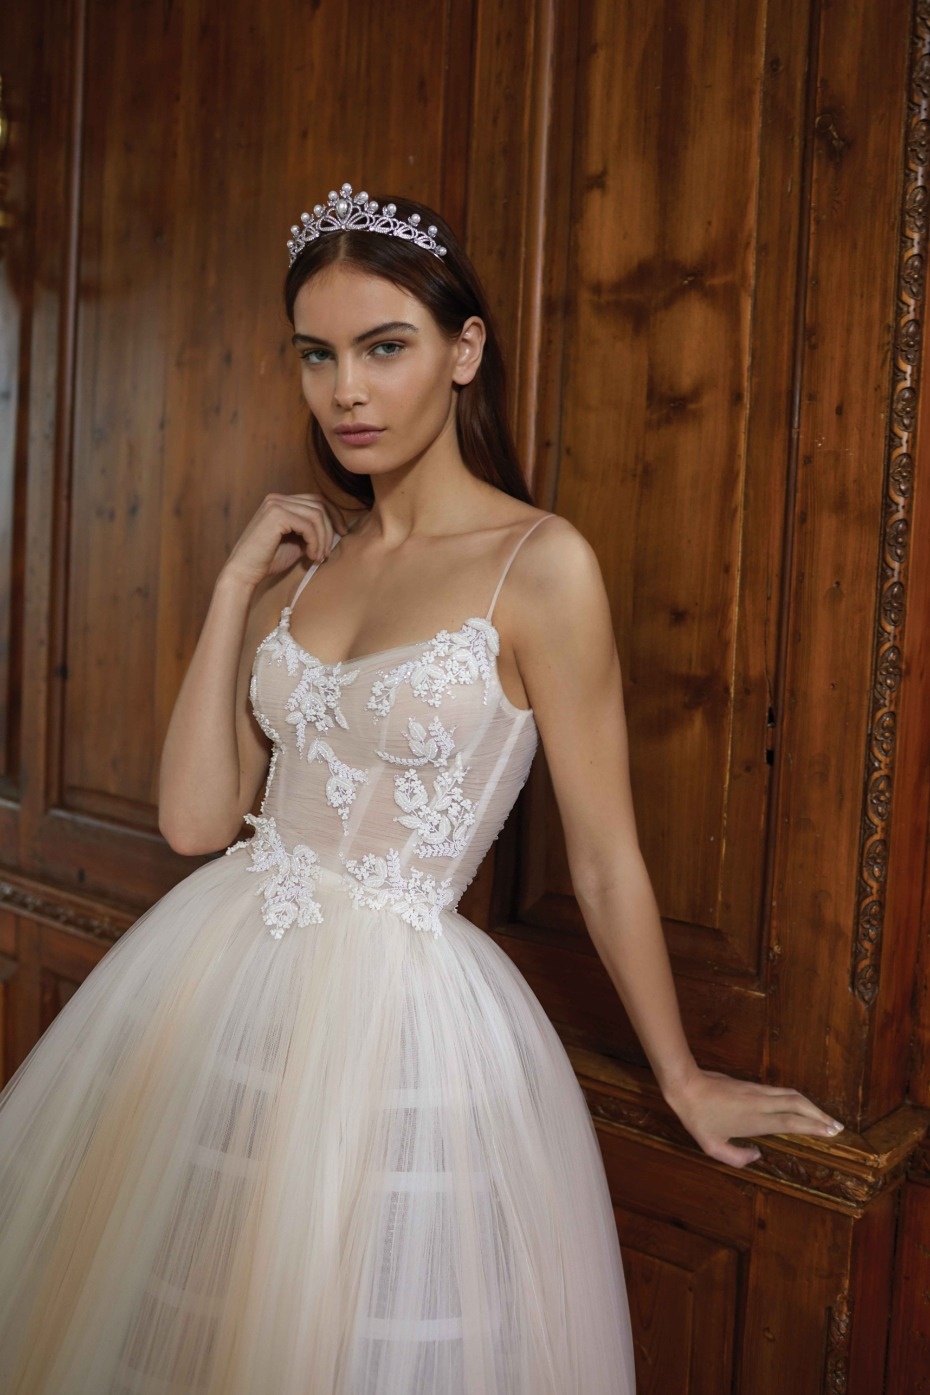 Get Ready to Have the Time of Your Lives In Galia Lahav's Dancing Queen Collection